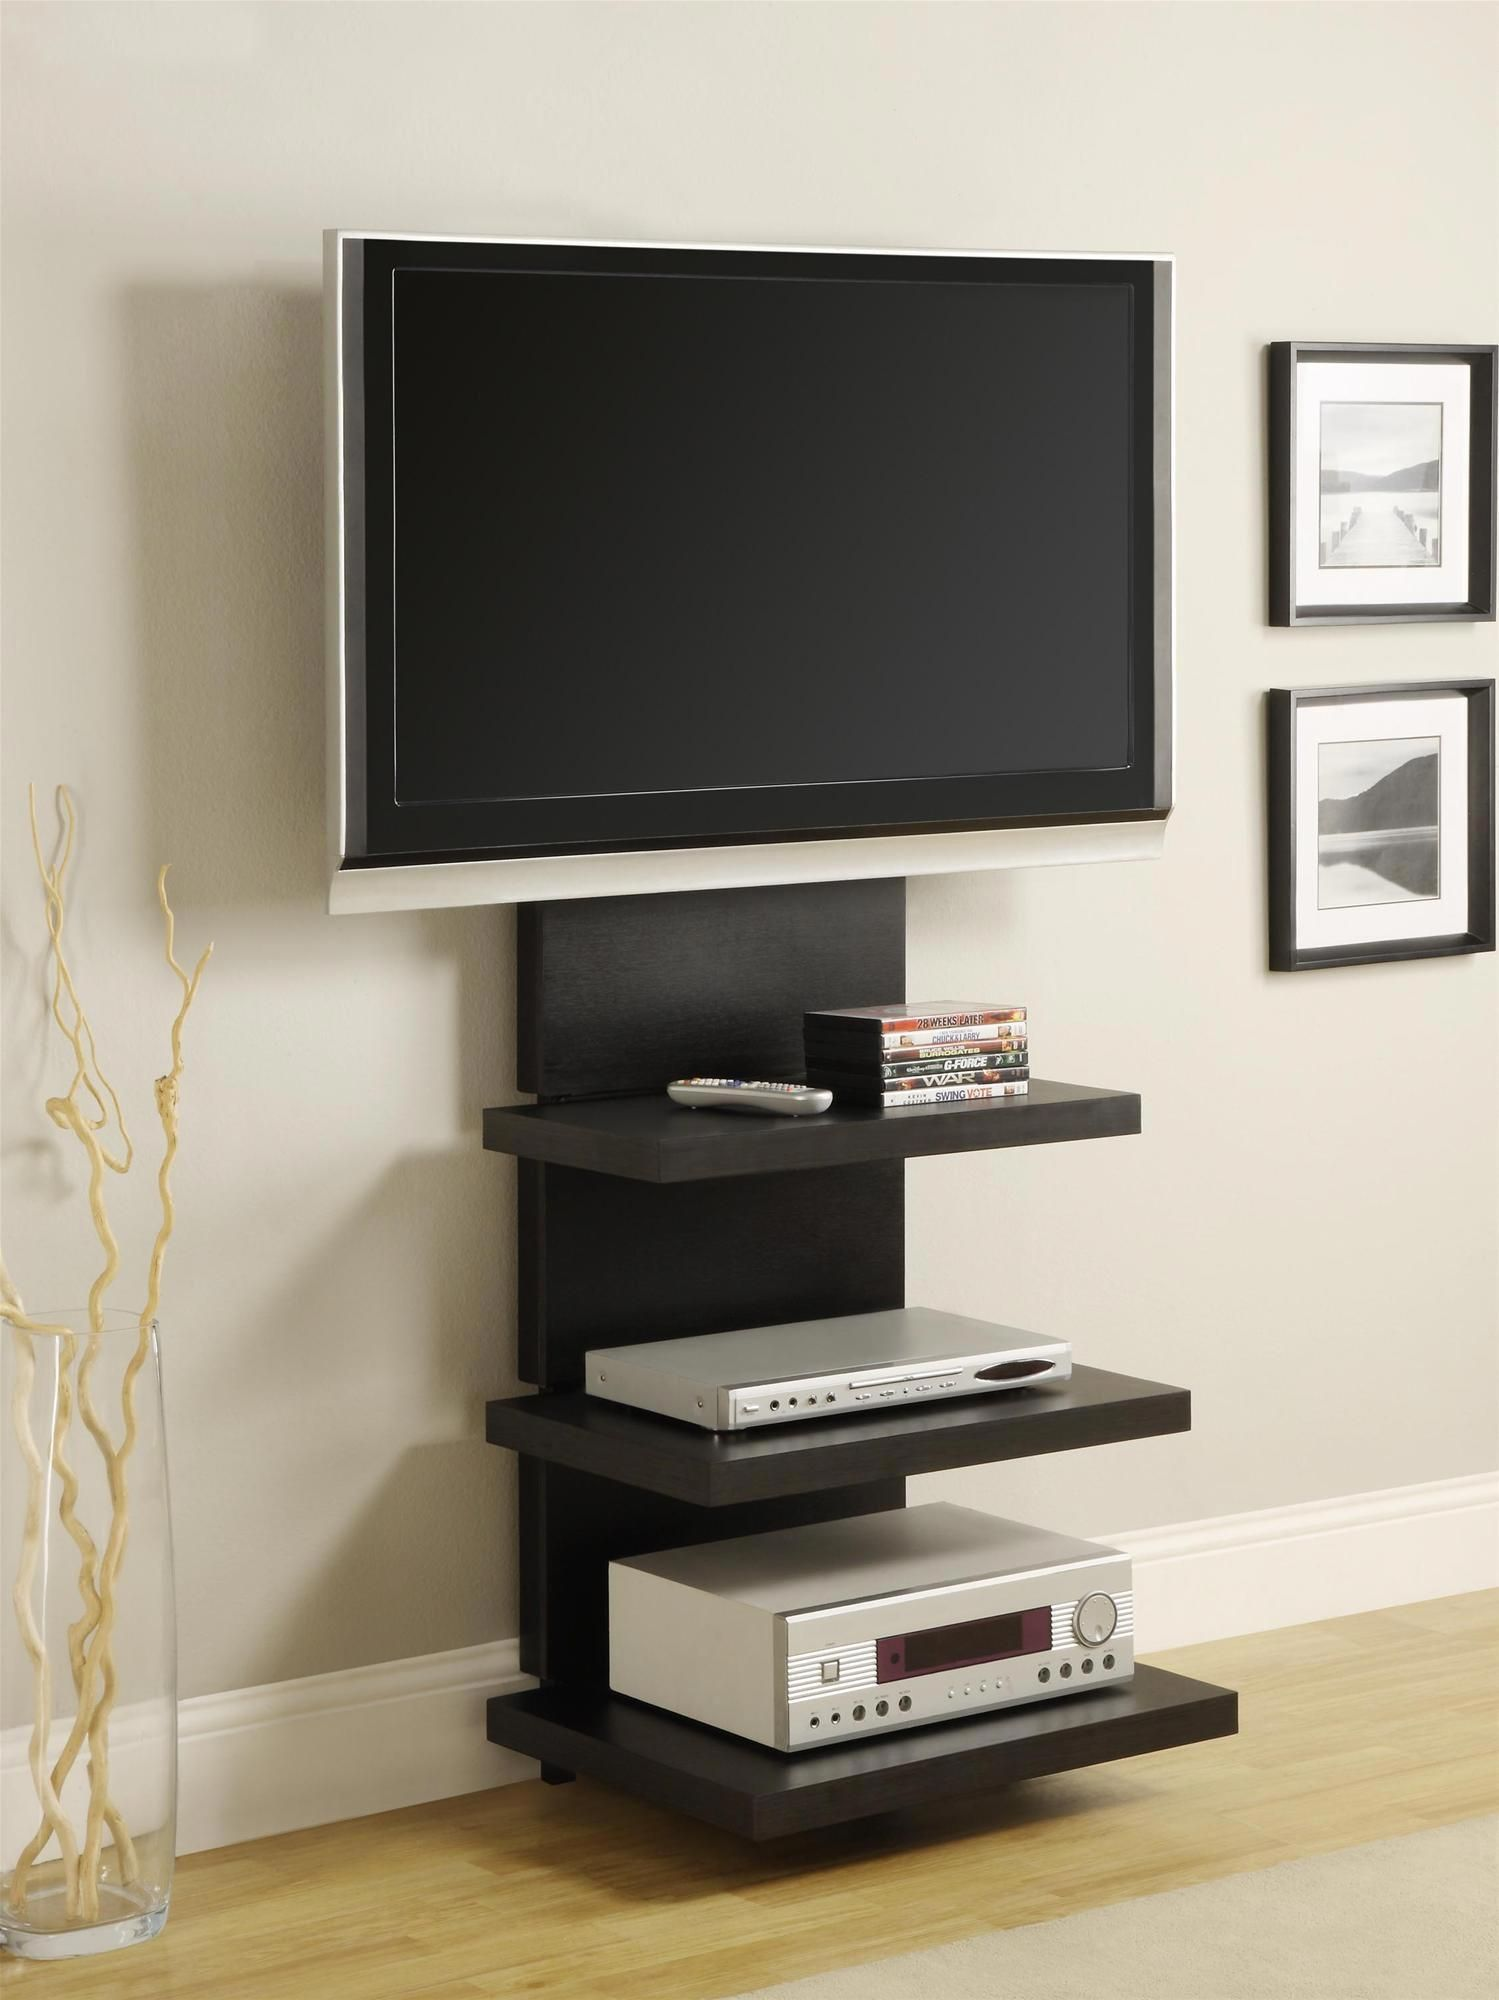 275 Best Lcd Unit Images On Pinterest: Image Result For Pinterest Mounted Tv Hide Cable Box With